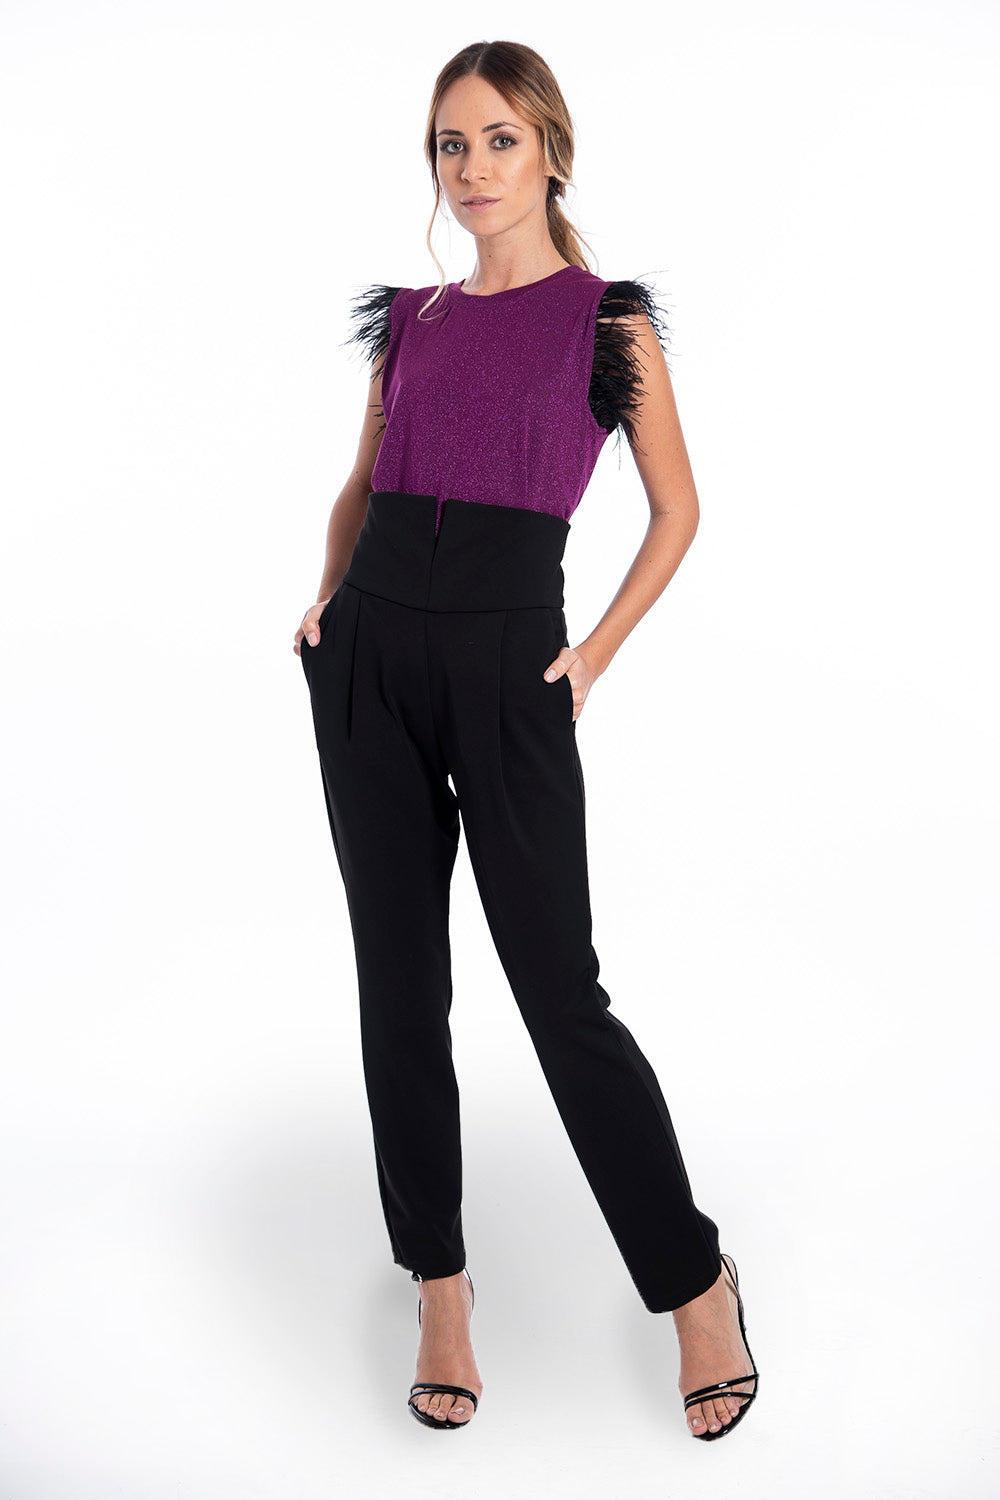 Patrizia Segreti high waist trousers with V waist design